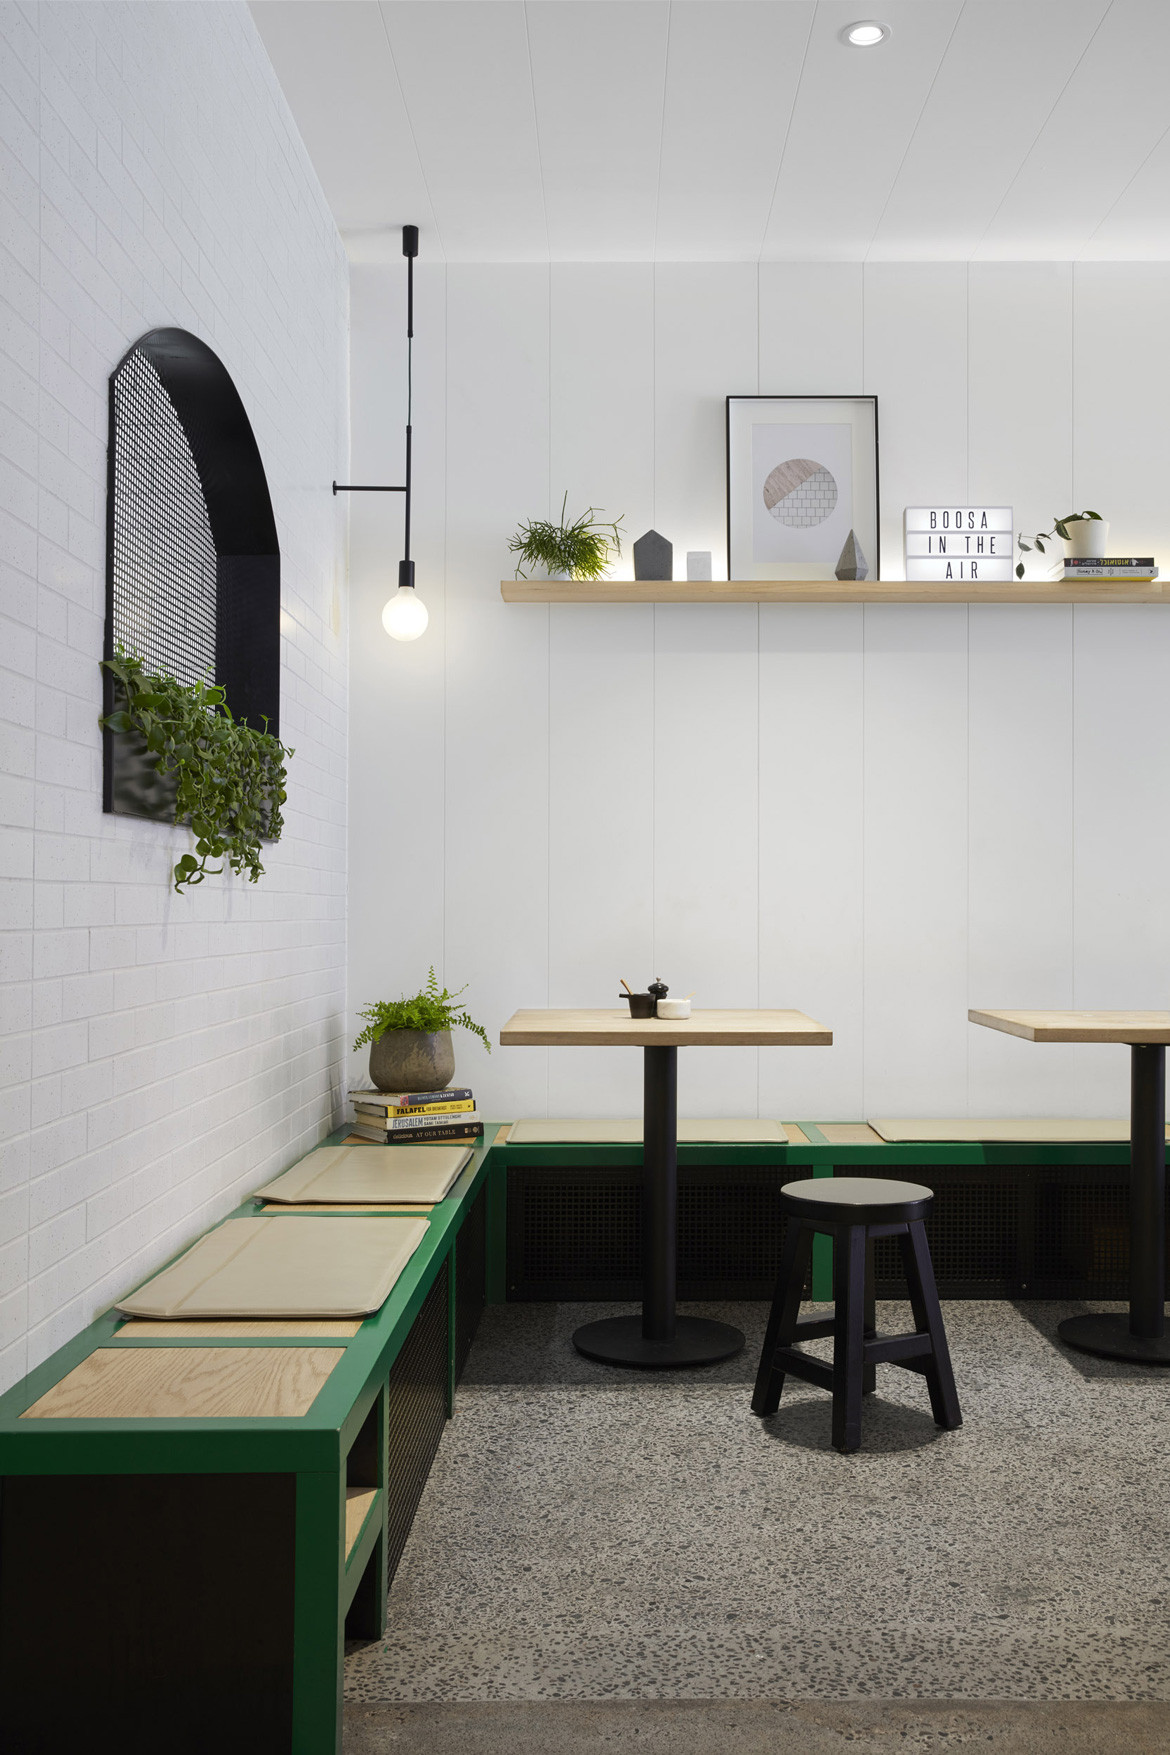 Boost Cafe Photography by Peter Clarke Bench seating